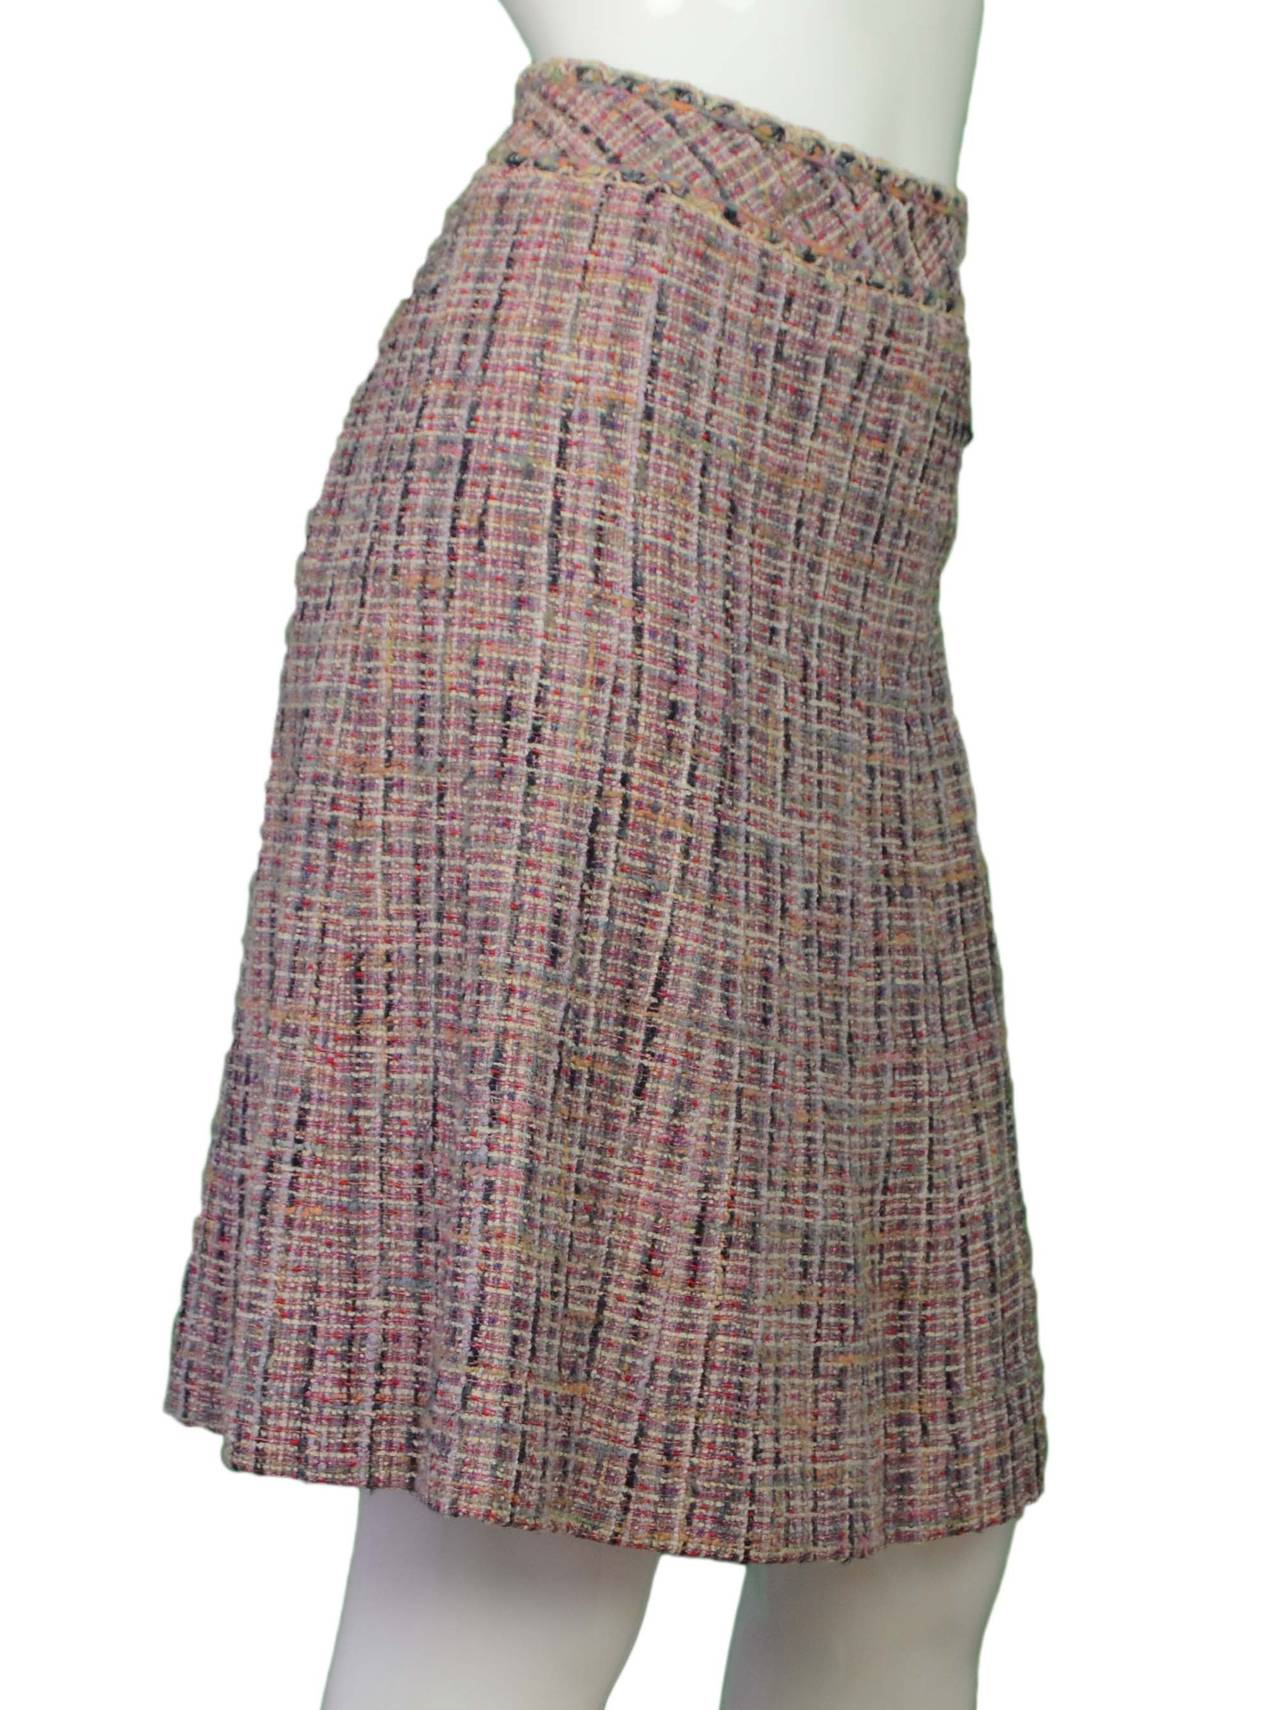 CHANEL Multi-Colored Tweed A-Line Skirt sz 34 2